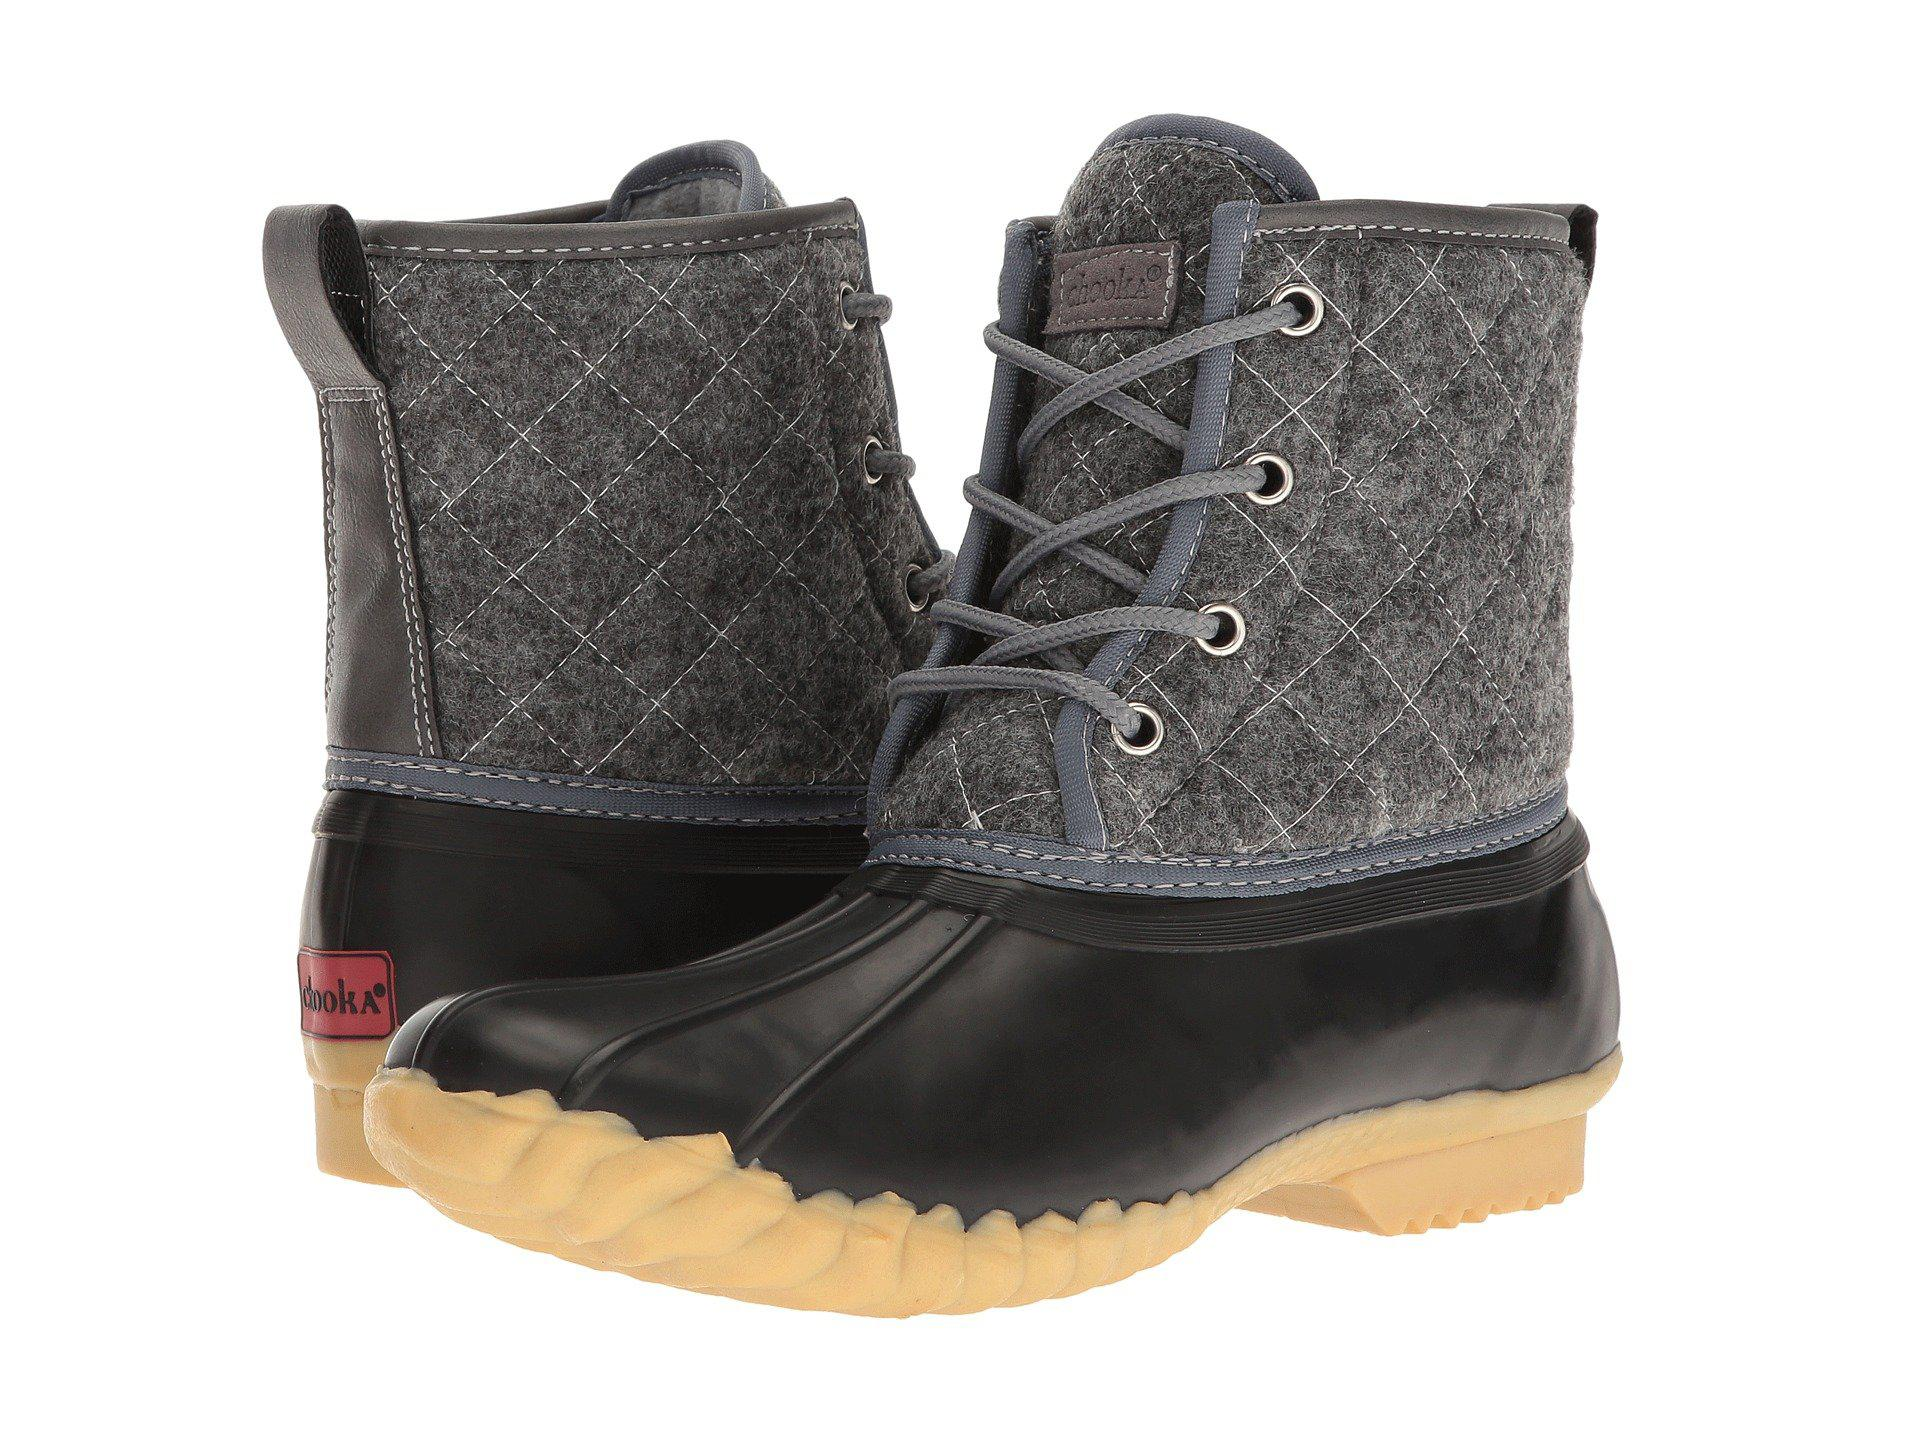 7c6f3d5330c Lyst - Chooka Eastlake Quilted Duck Boot